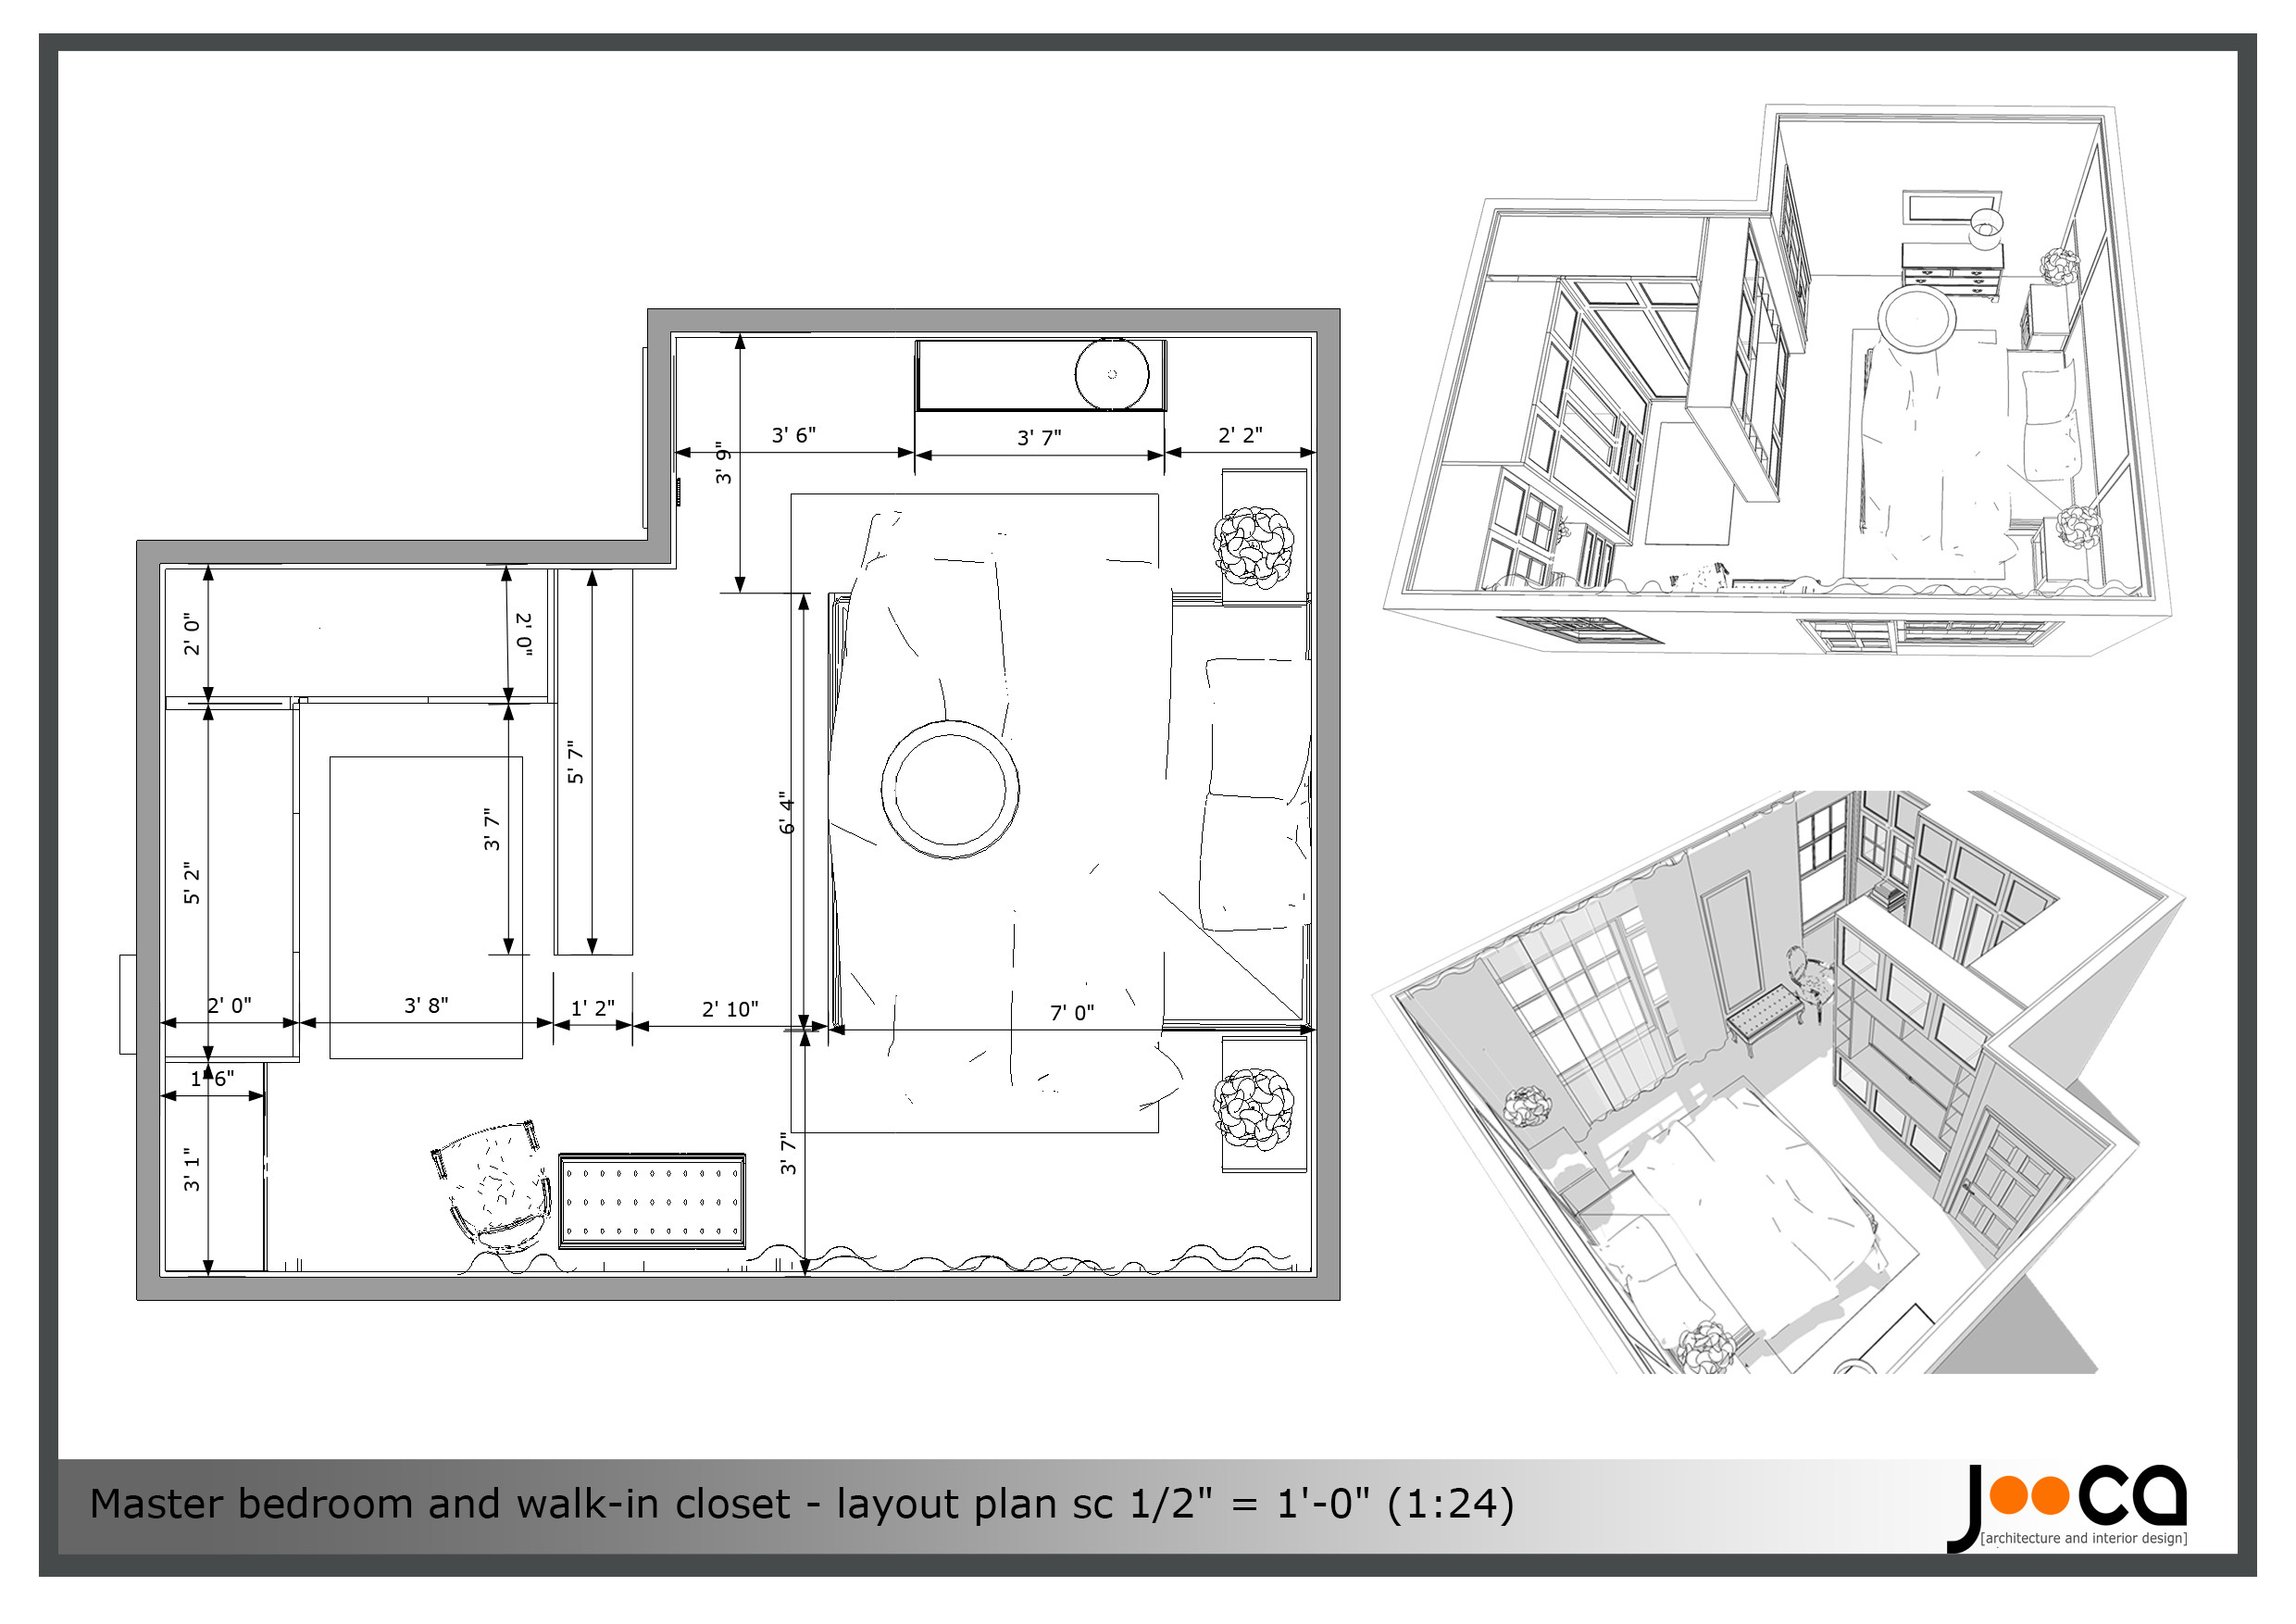 Standard Bedroom Closet Dimensions  Check Out 20 Master Bedroom Closet Size Ideas House Plans